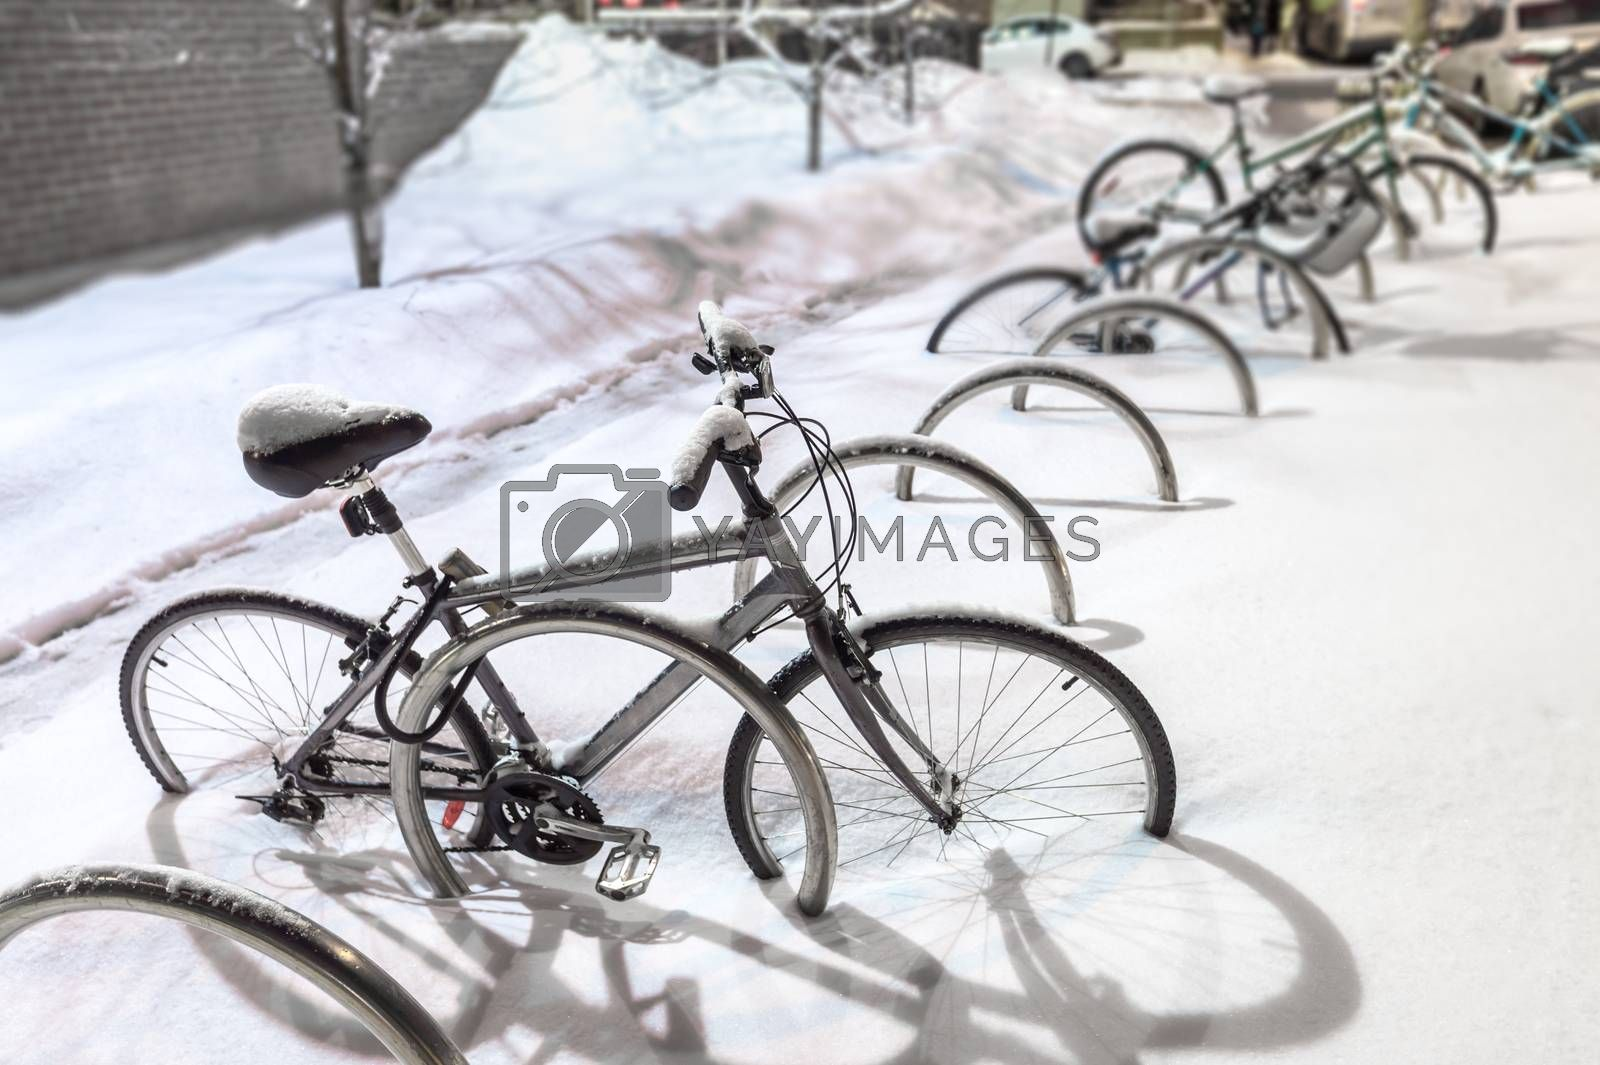 Bike covered in snow during snow storm by mbruxelle